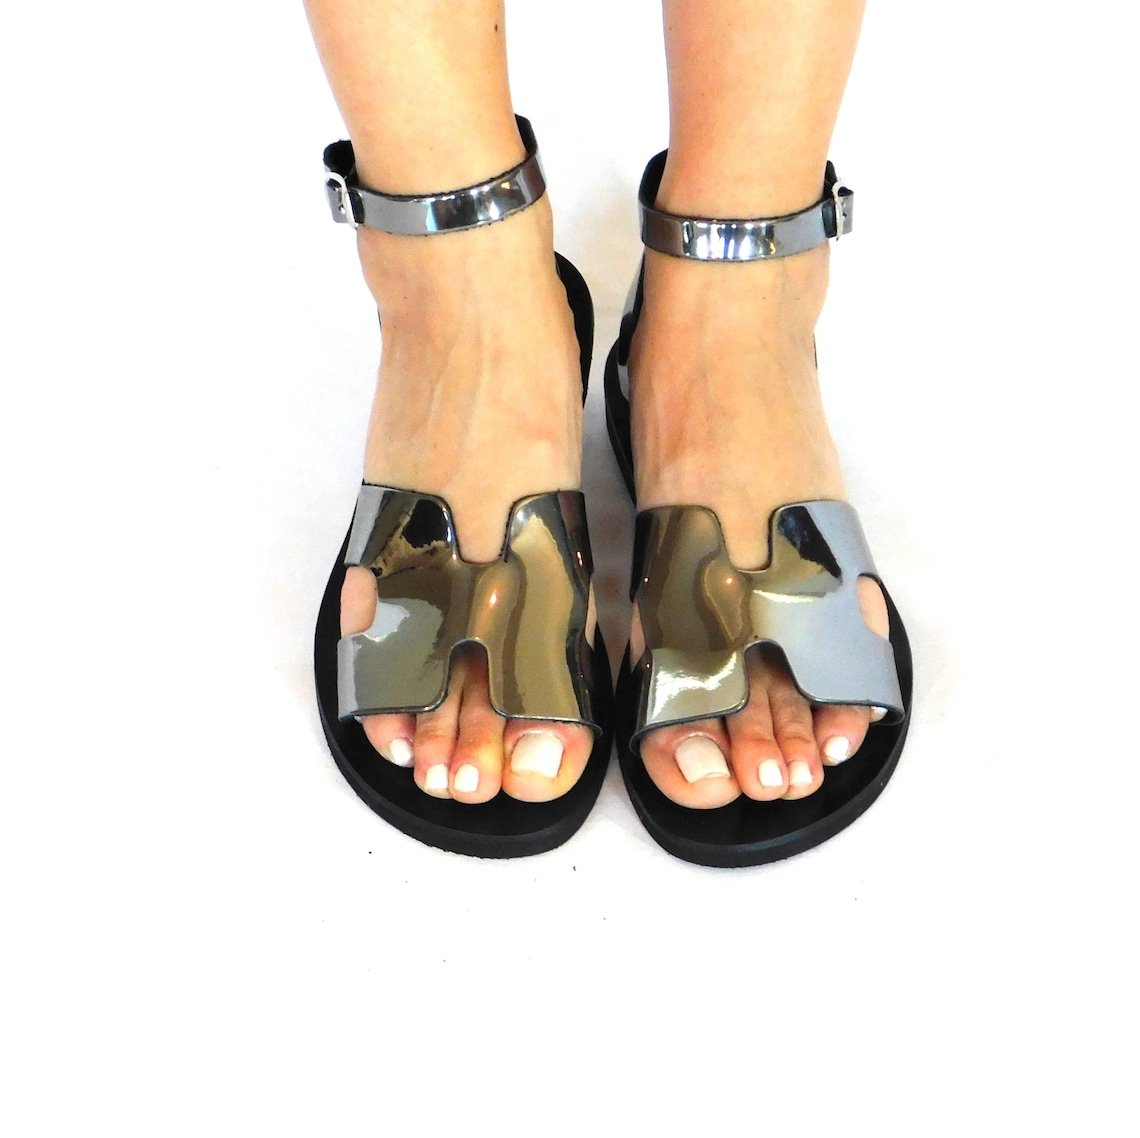 Ankle strap sandals, women sandals, metallic leather sandals, mirror leather shoes, summer sandals, beach sandals, greek sandals